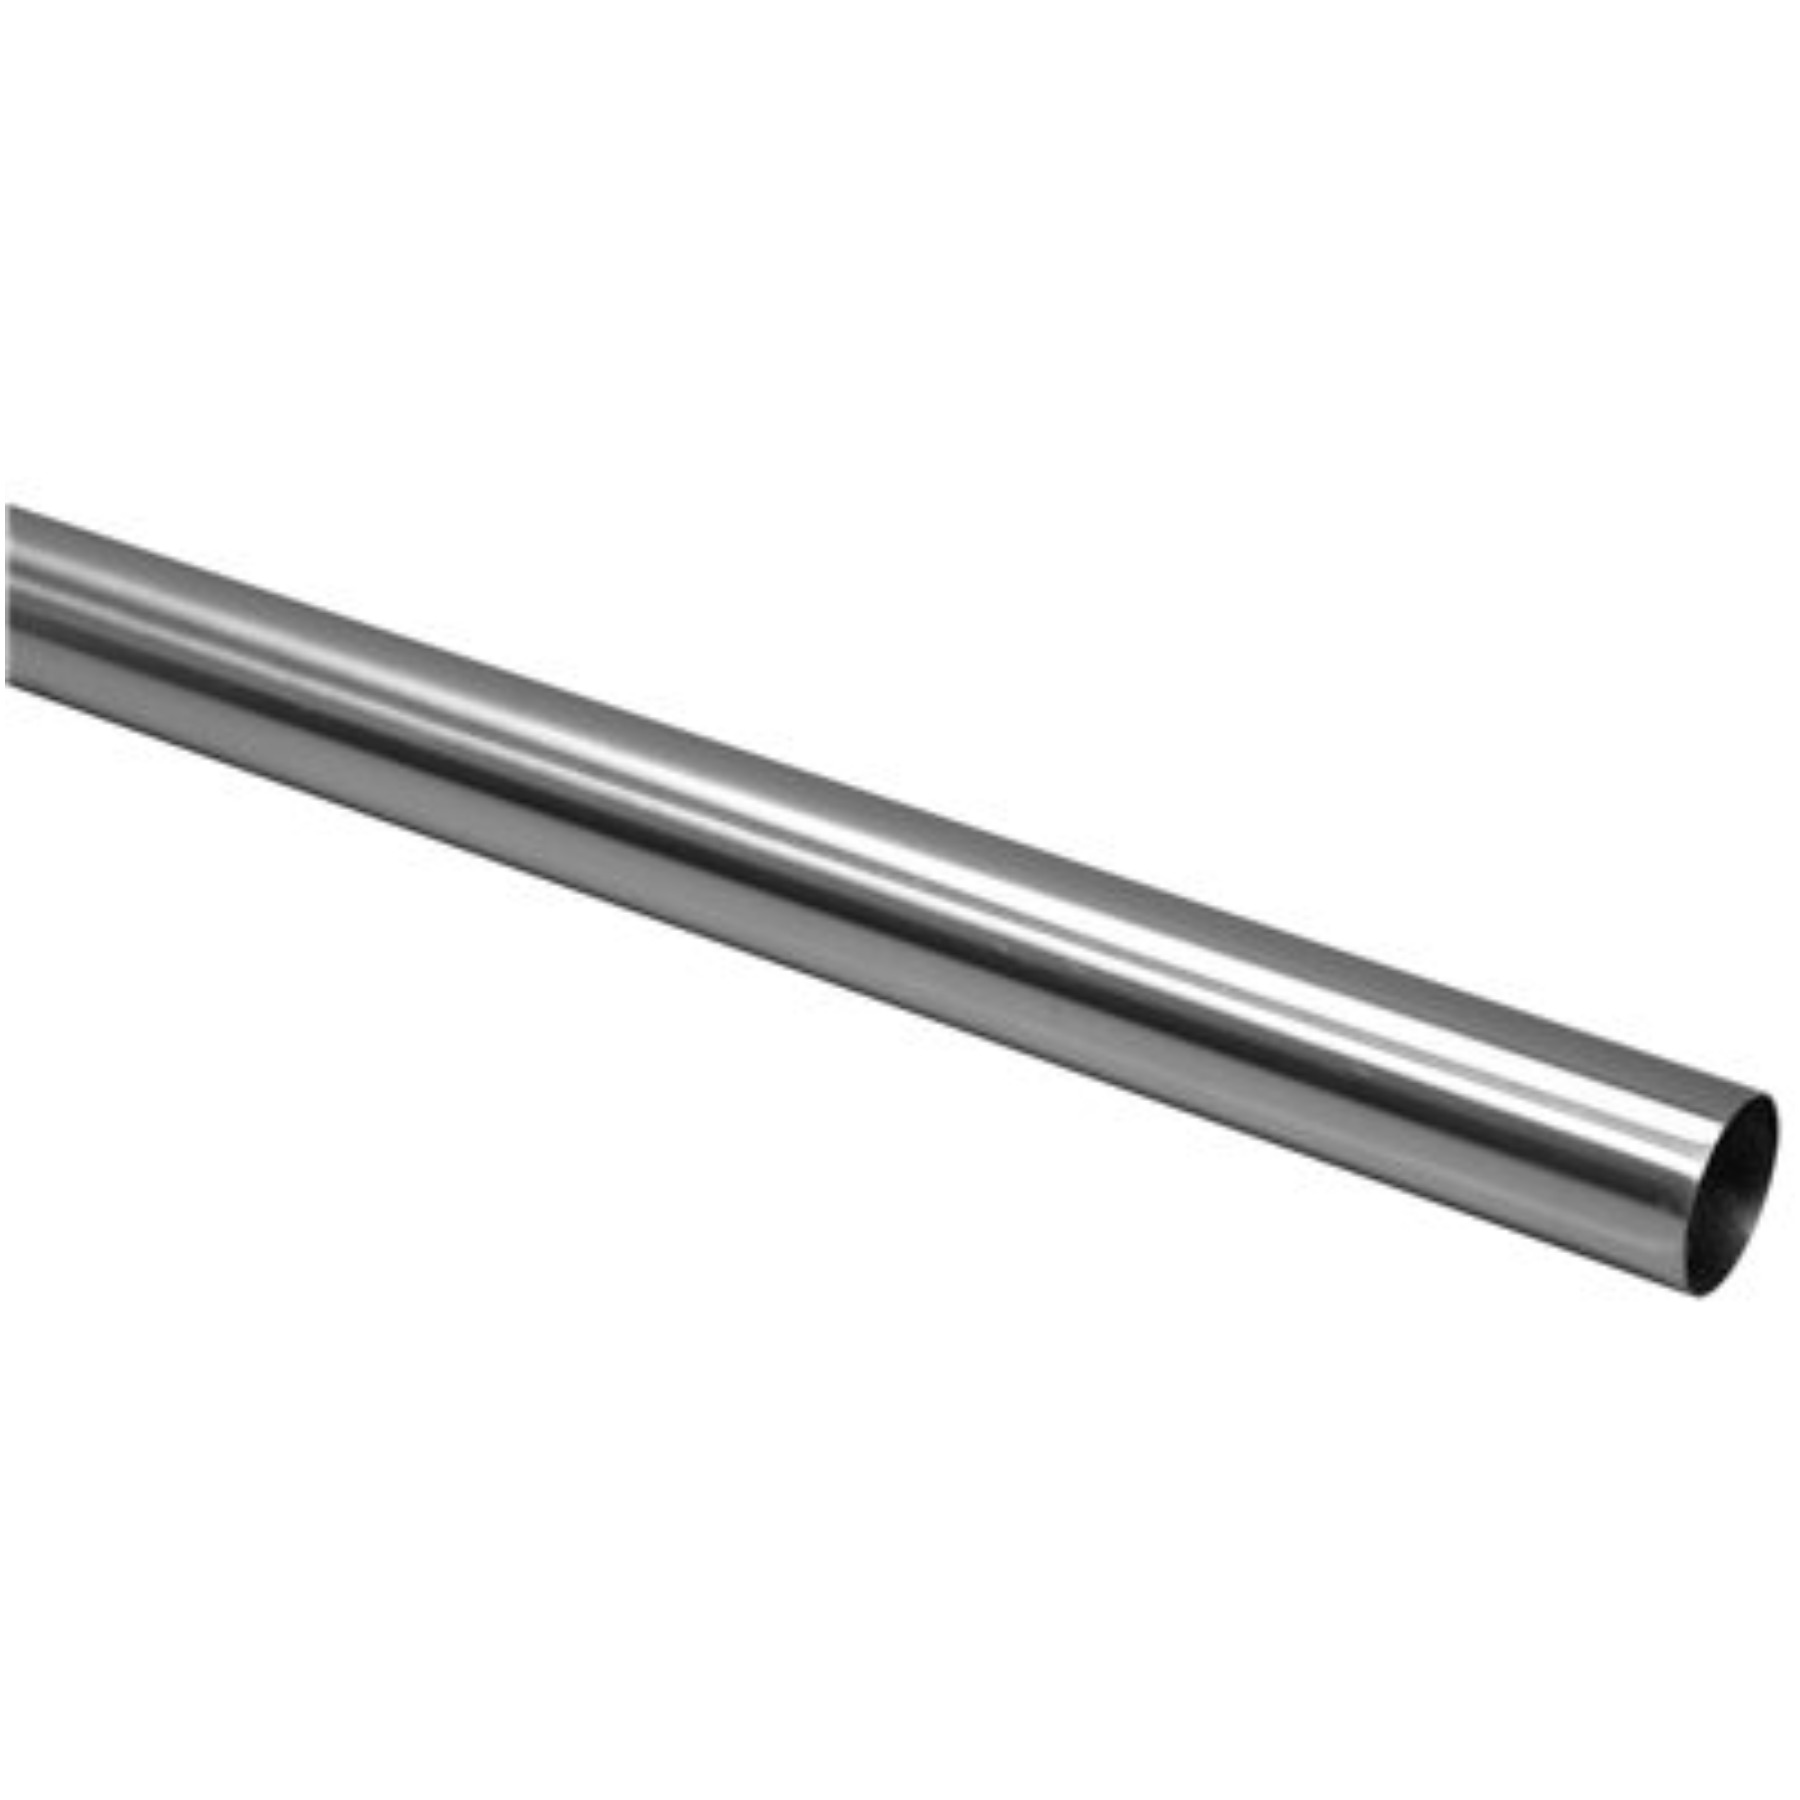 PREMIER� ALUMINUM SHOWER ROD, 6 FT.